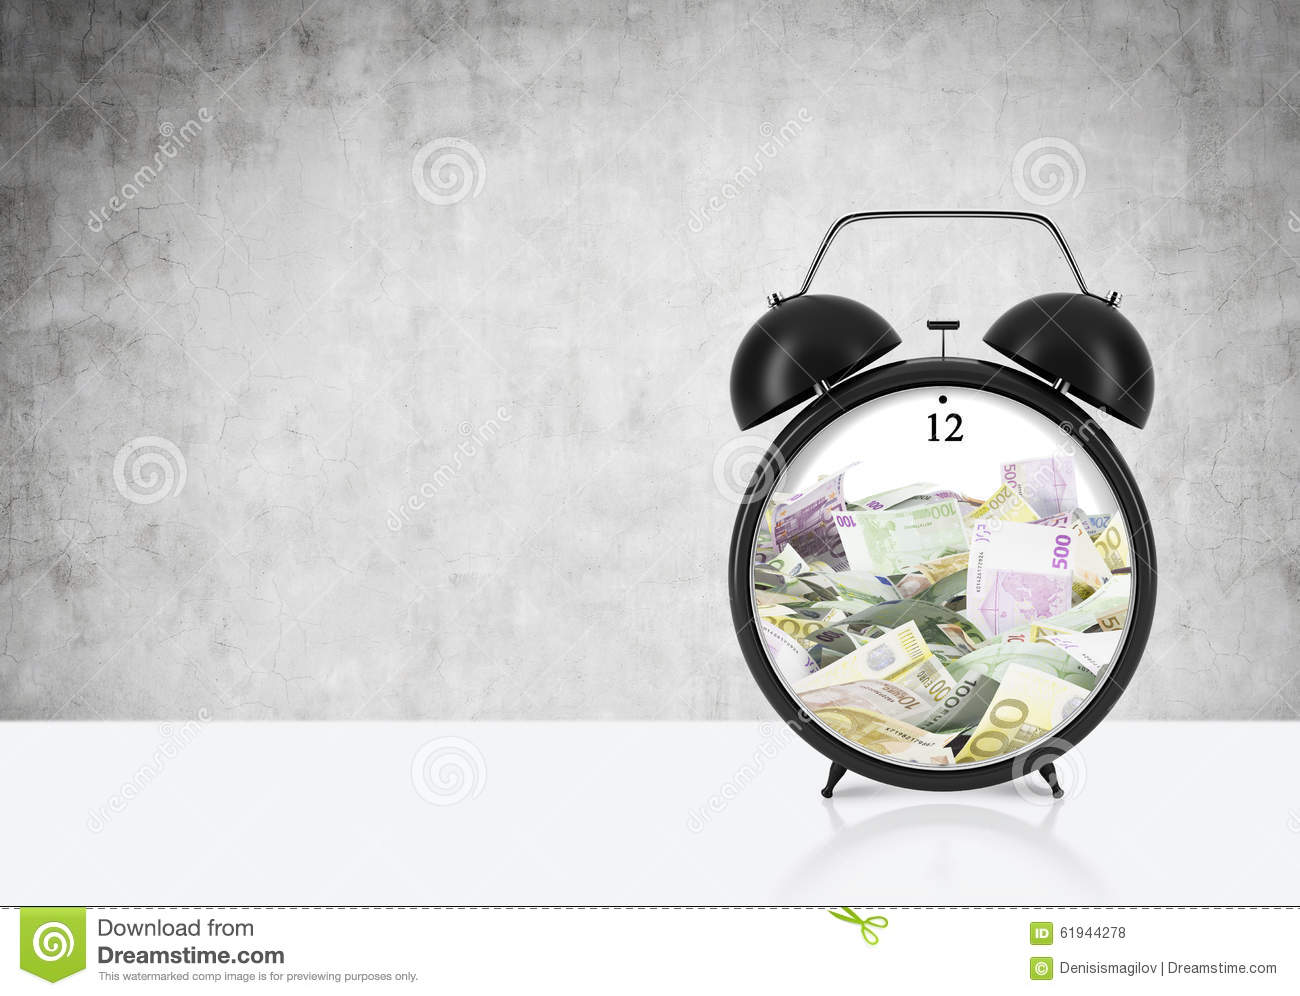 There is EURO bills inside the alarm clock which is on the table. The concept of  time is money  and a time management.